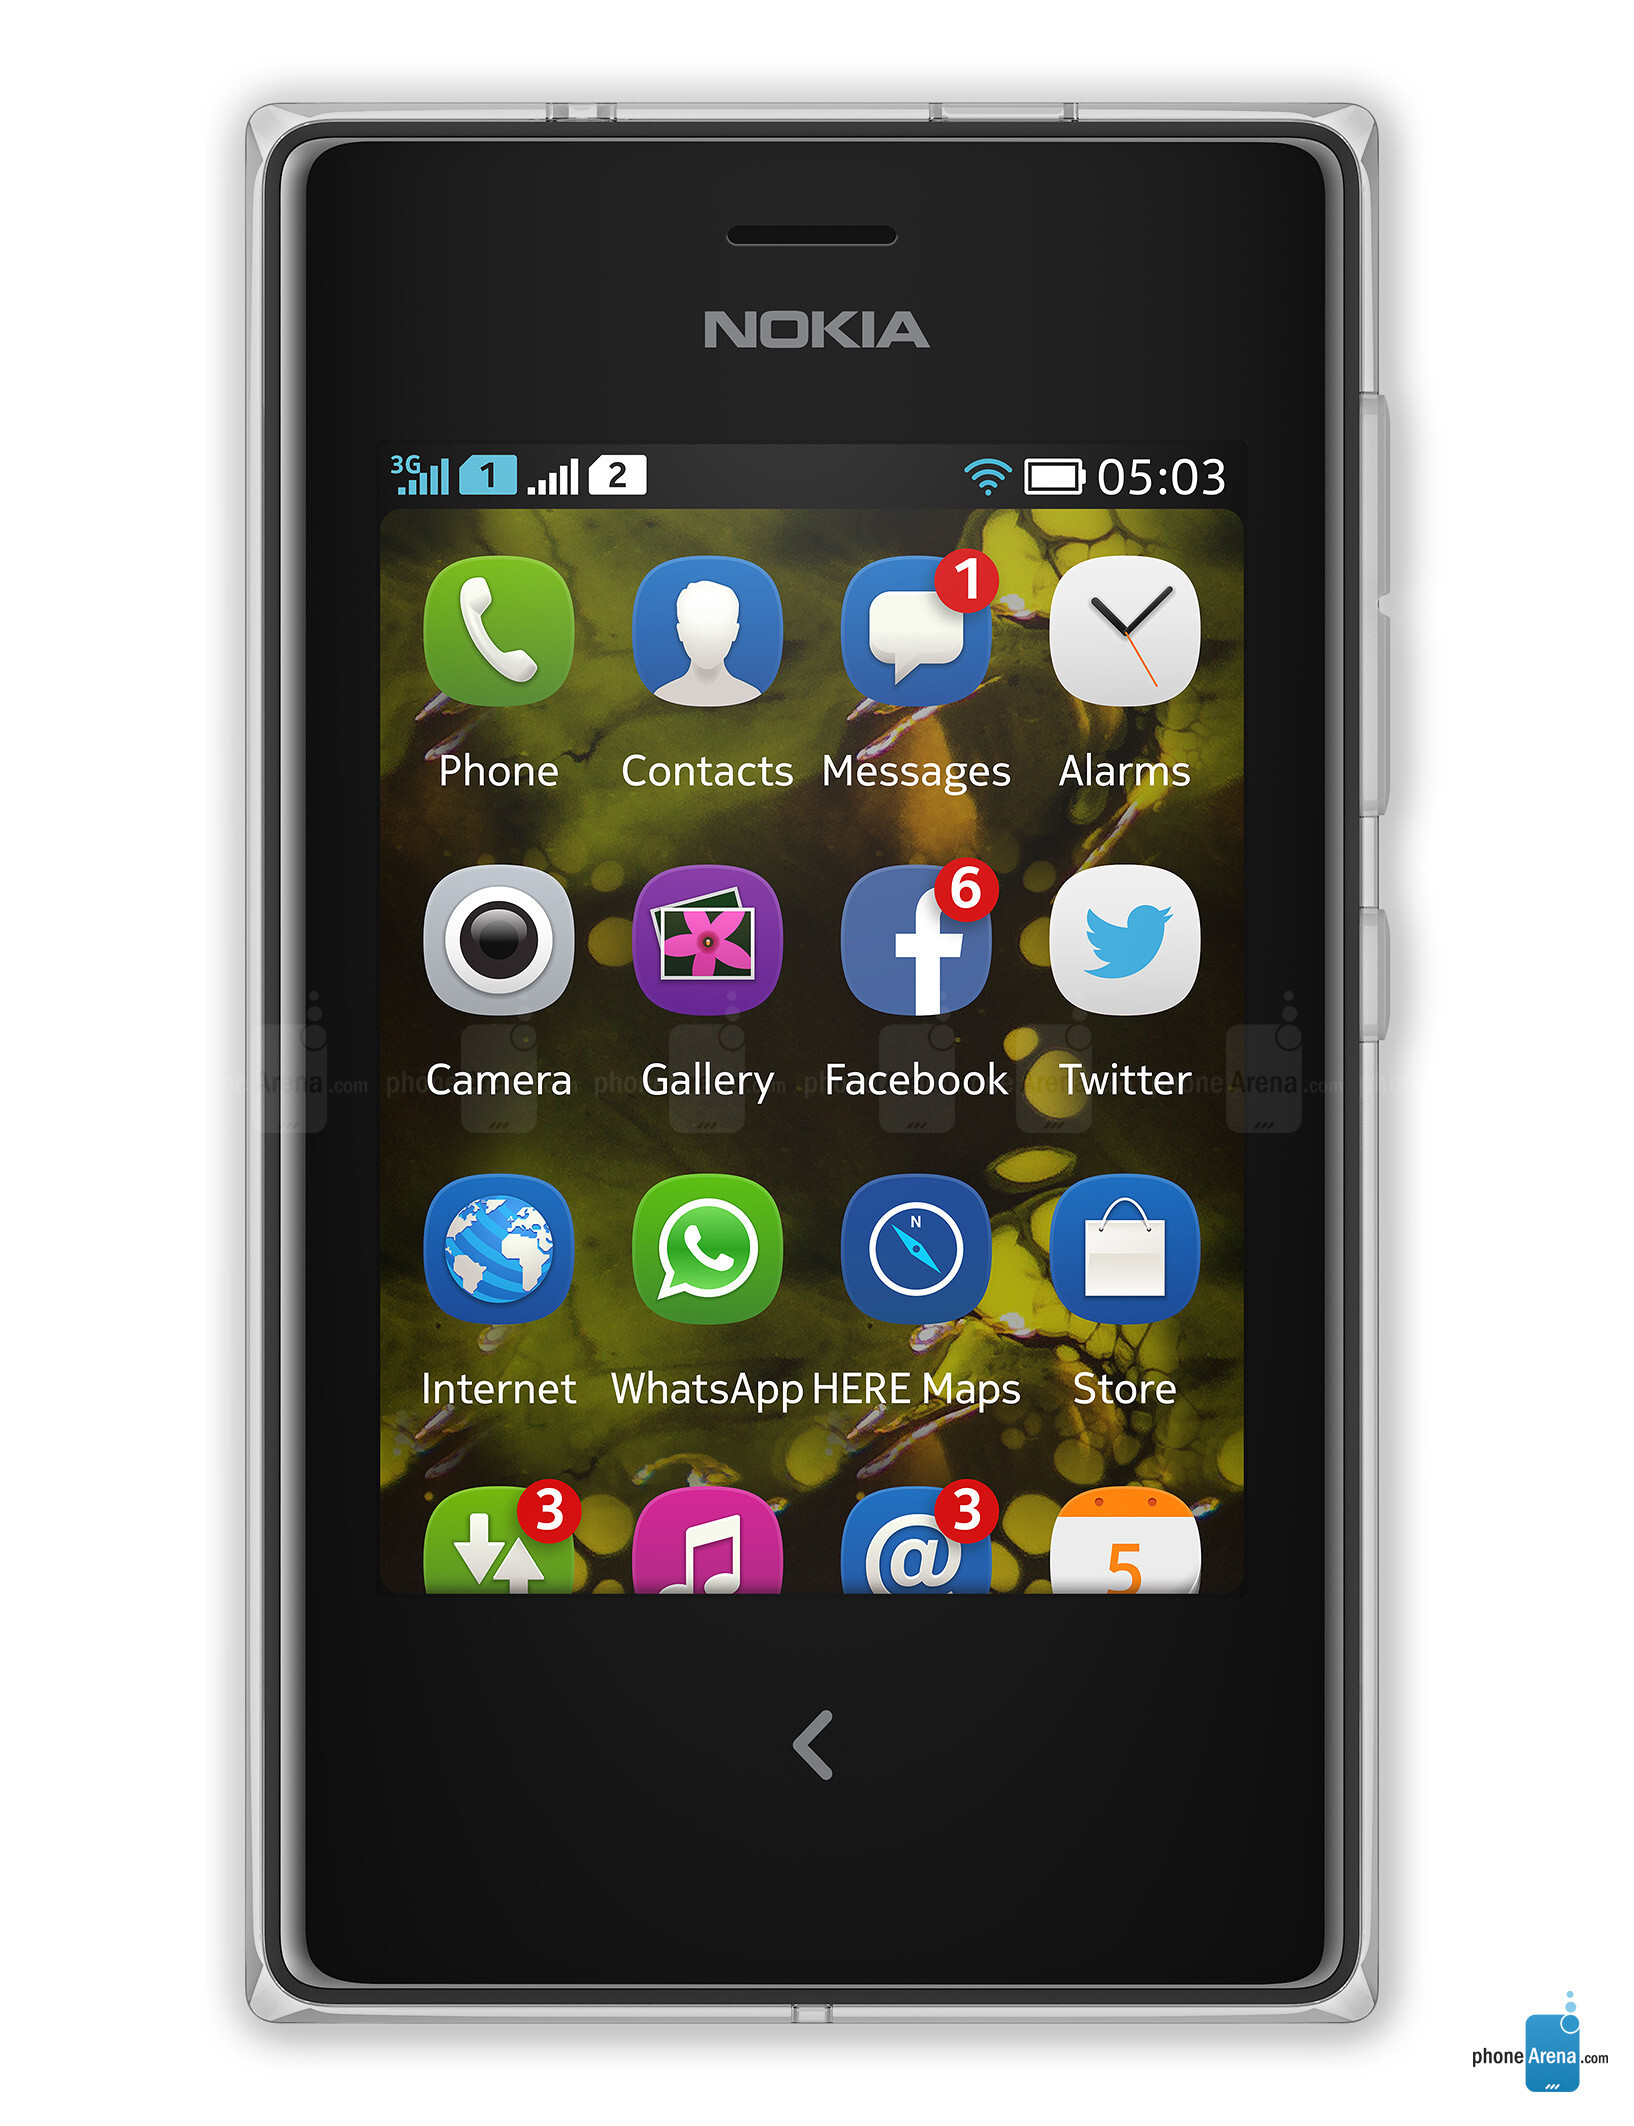 nokia asha 503 specs HTC Touch 3G HTC Touch Dual